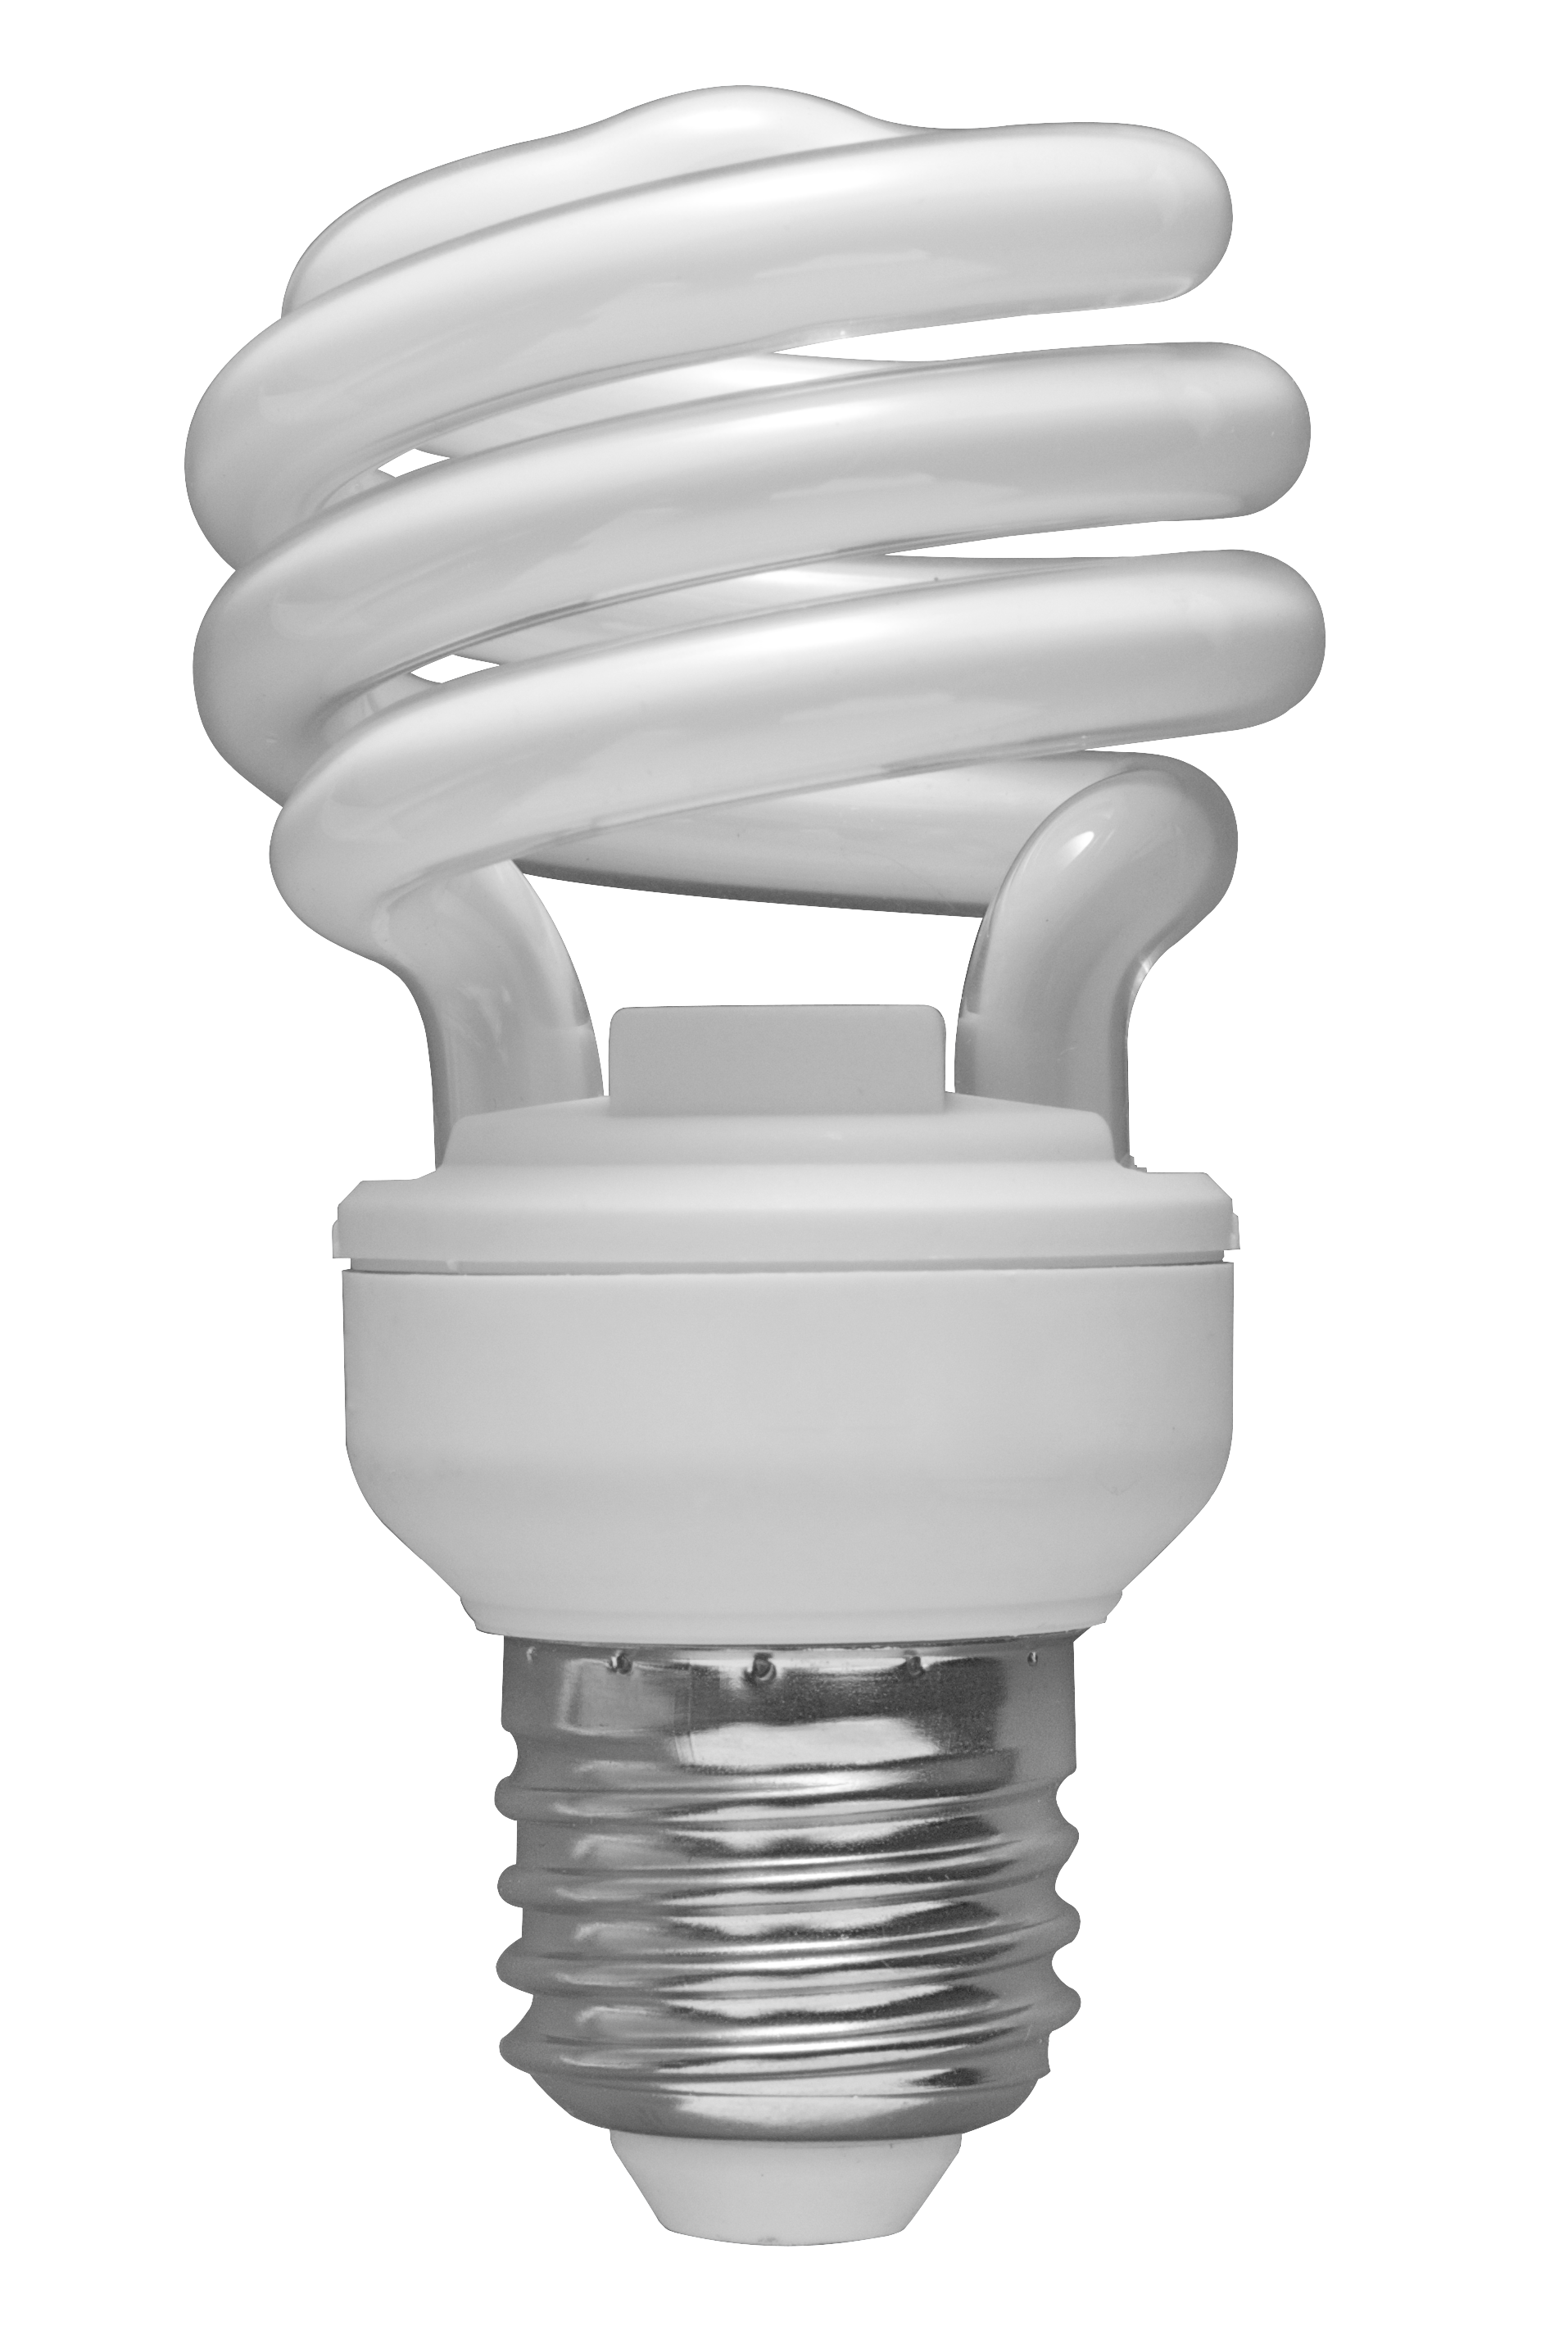 Png image purepng free. Lamp clipart electrical bulb